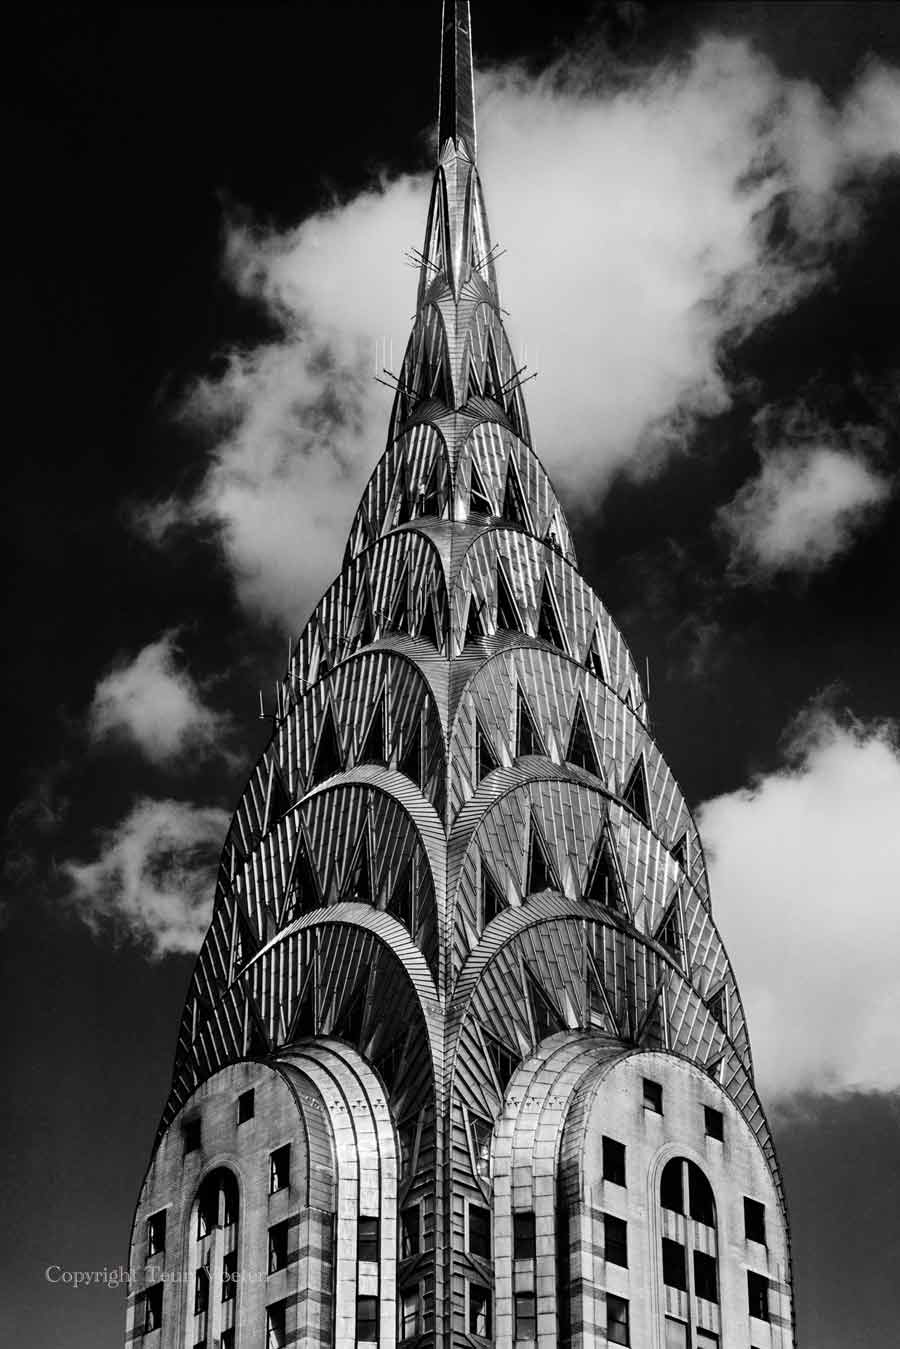 New York Architecture Photography Teun Voeten